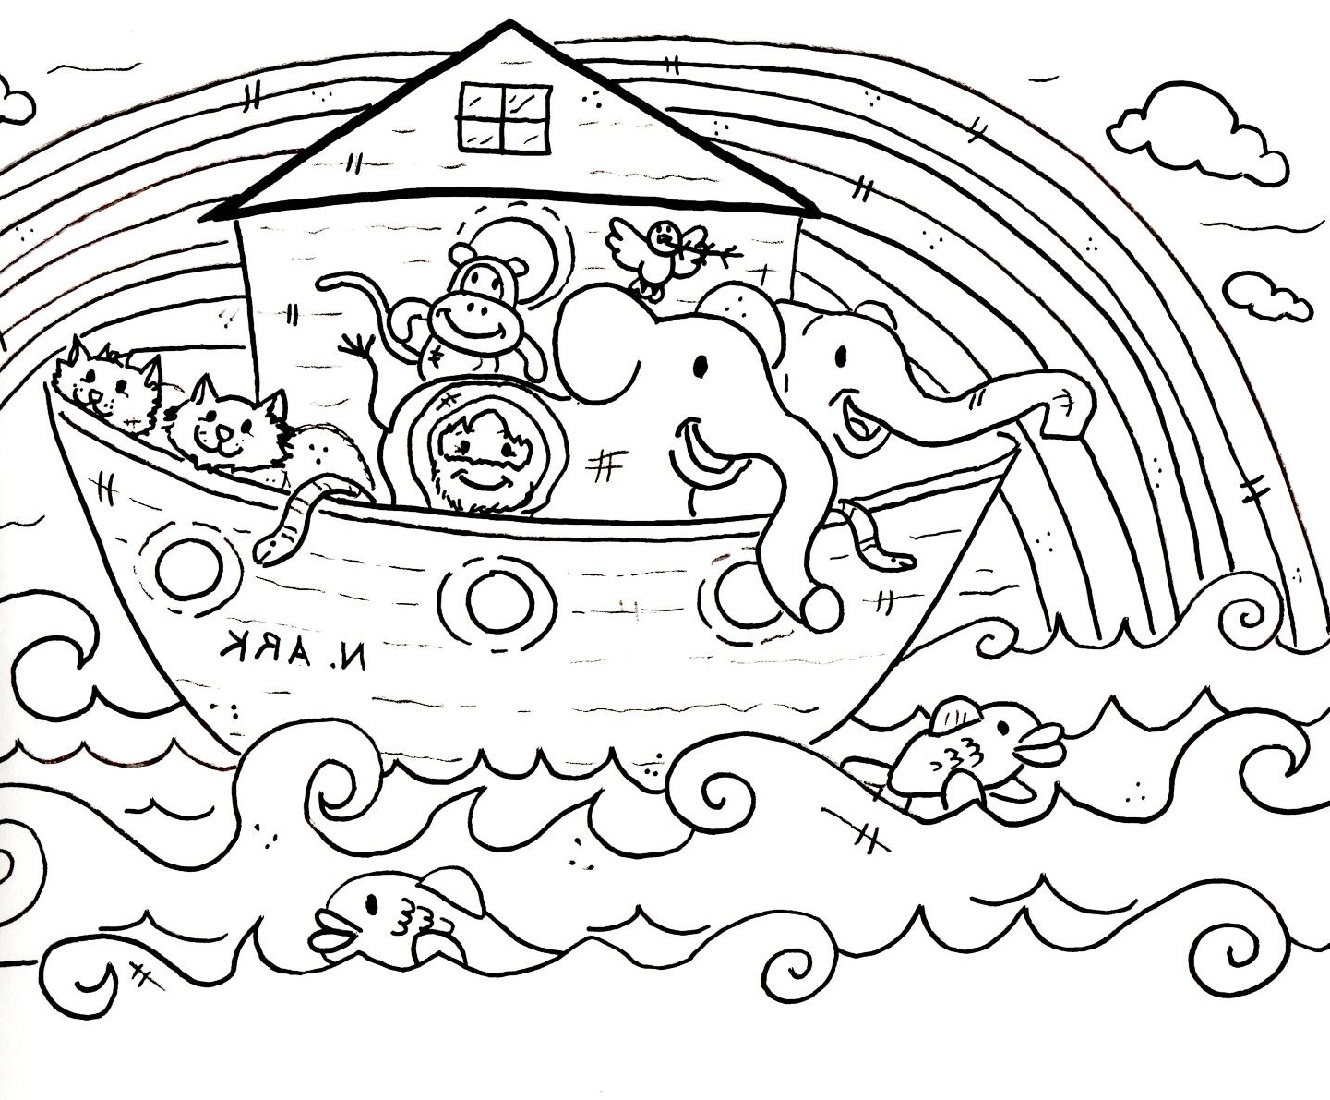 noah's ark coloring page four